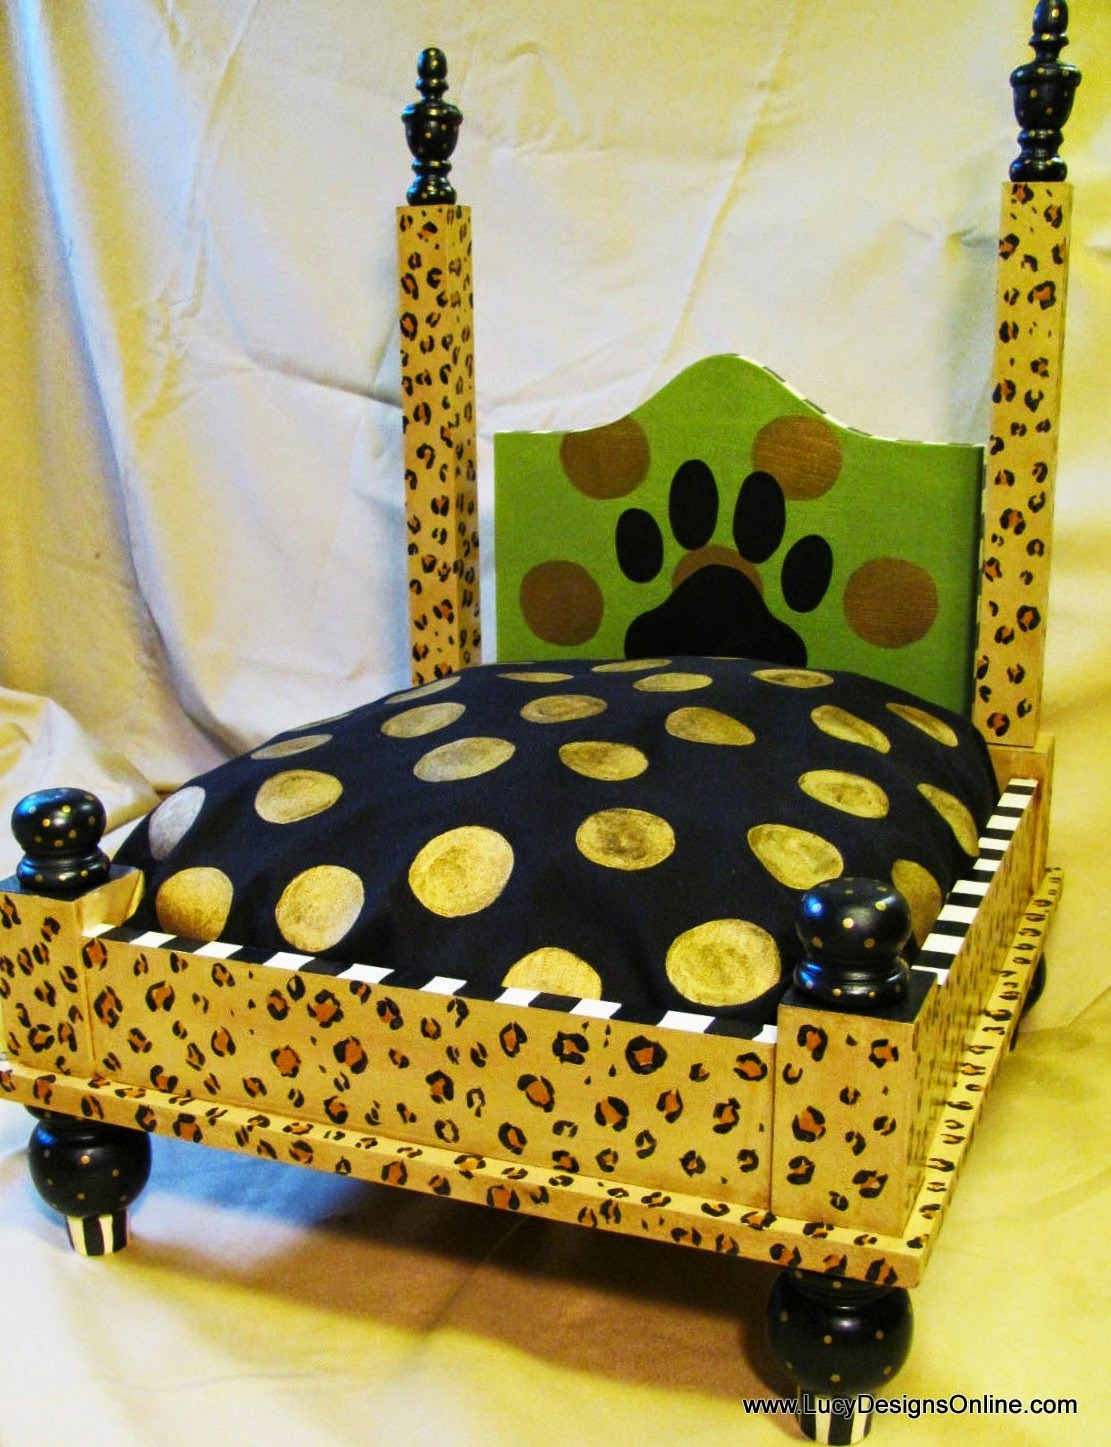 leopard or cheetah print hand painted dog bed & Hand Painted Dog Beds in Stripes Leopard Animal Print and Textured ...